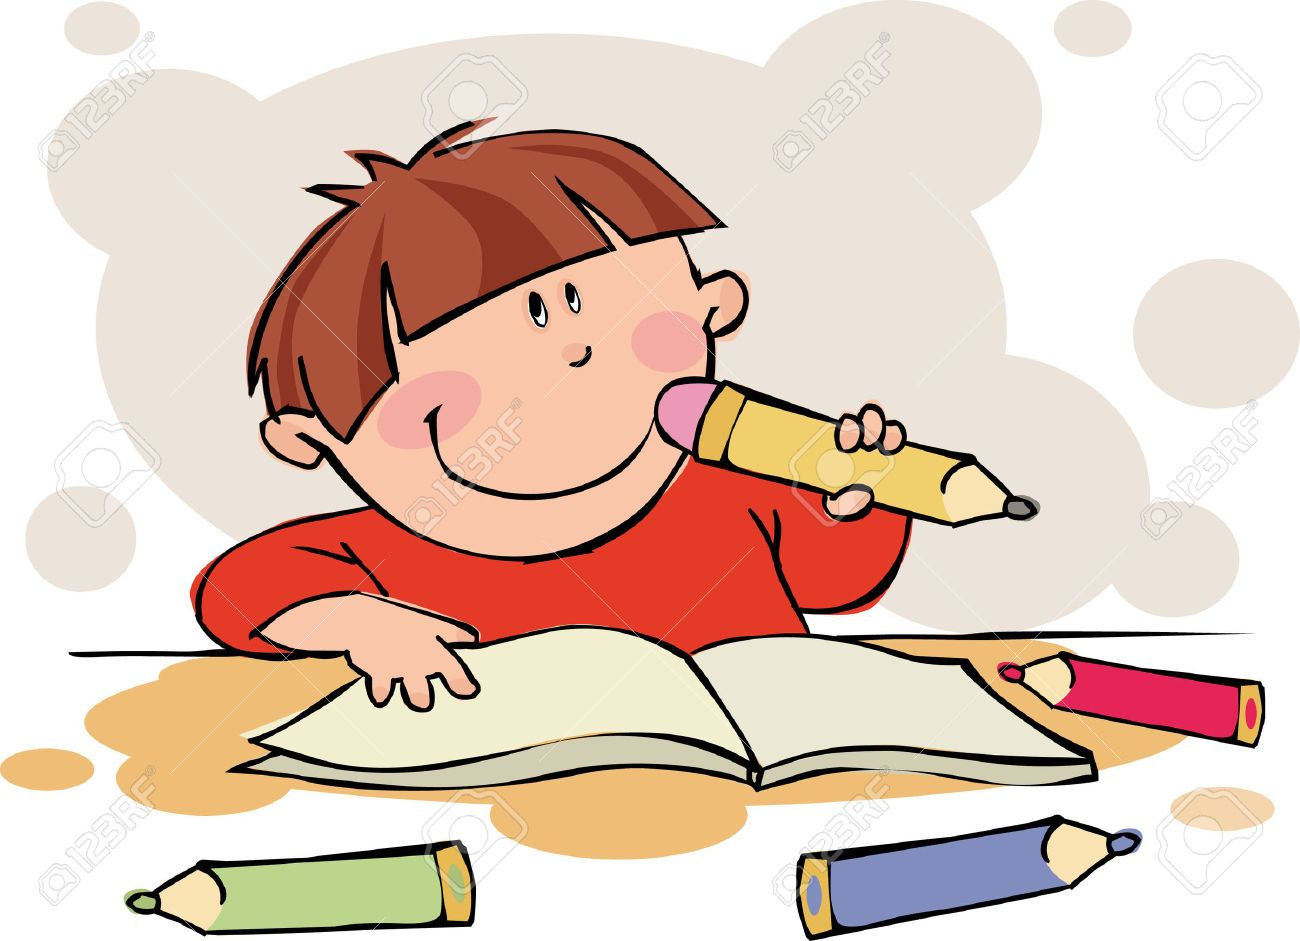 Image result for cartoon picture of child doing homework.